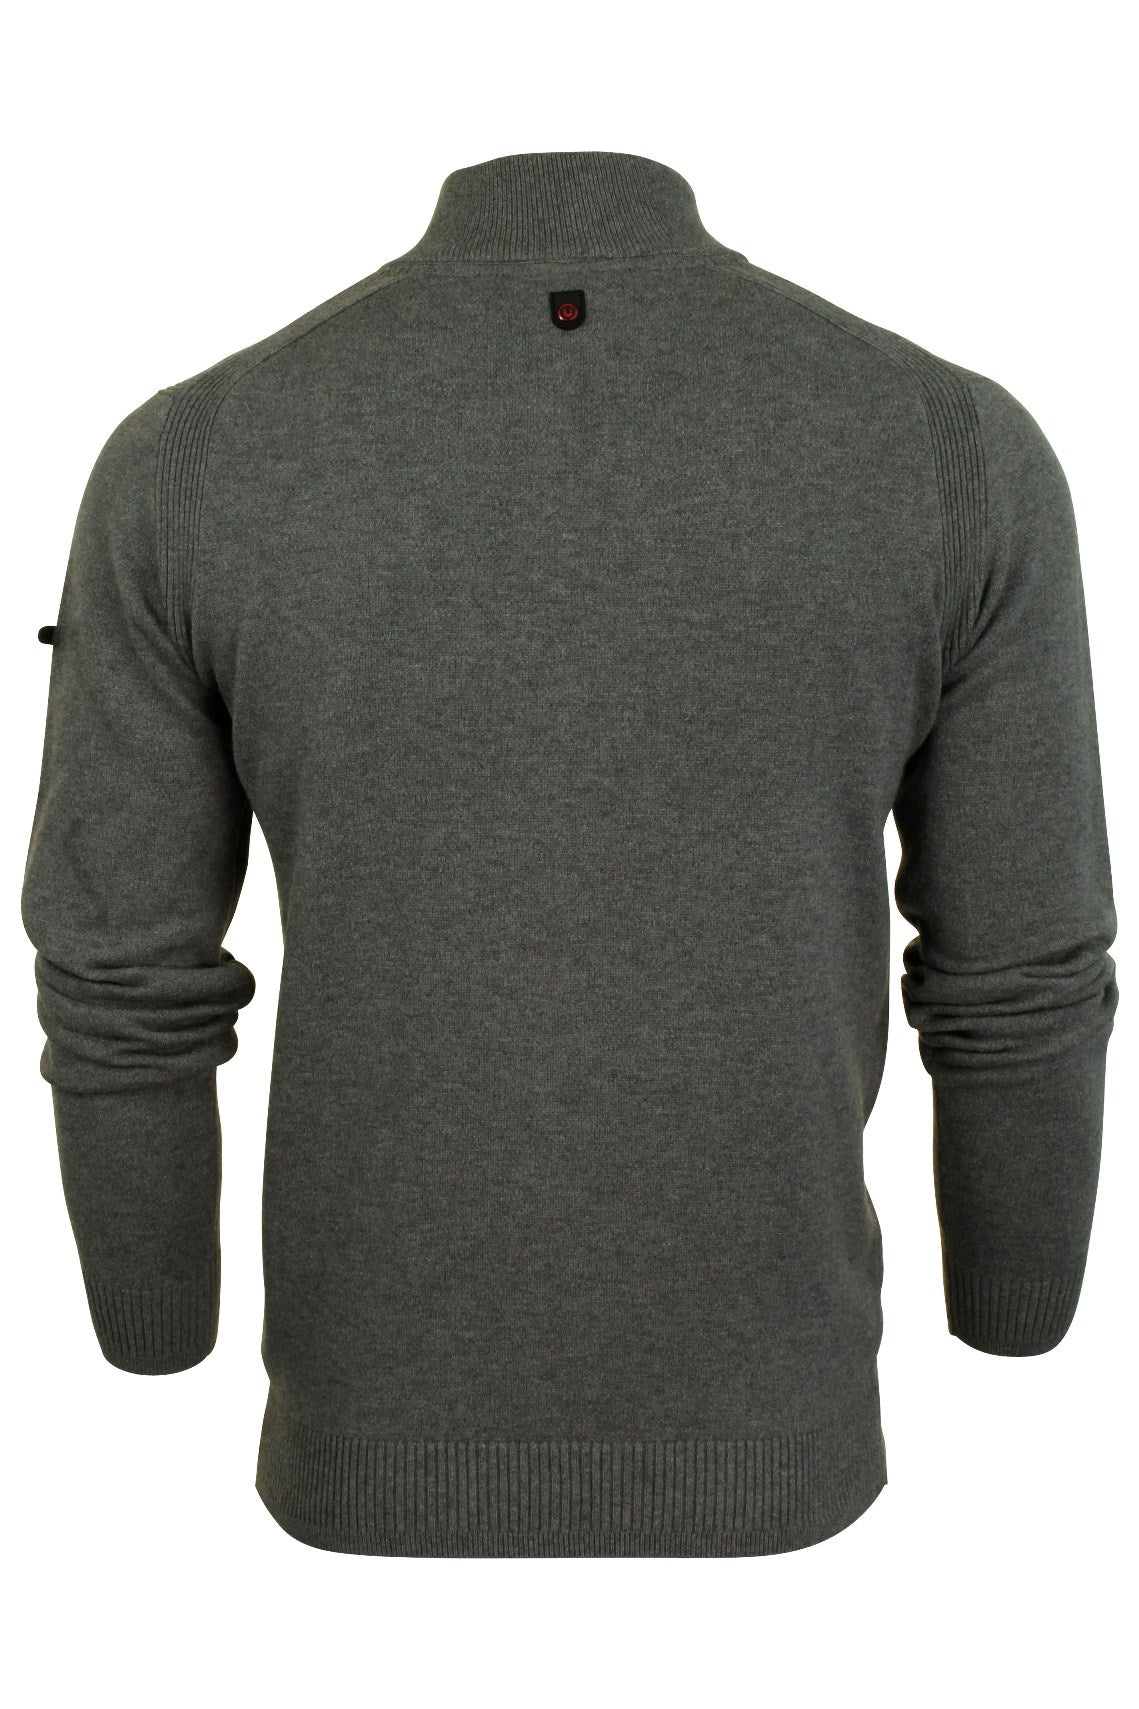 Mens 1/4 Zip Neck Jumper by Duck and Cover 'Latitude'-3